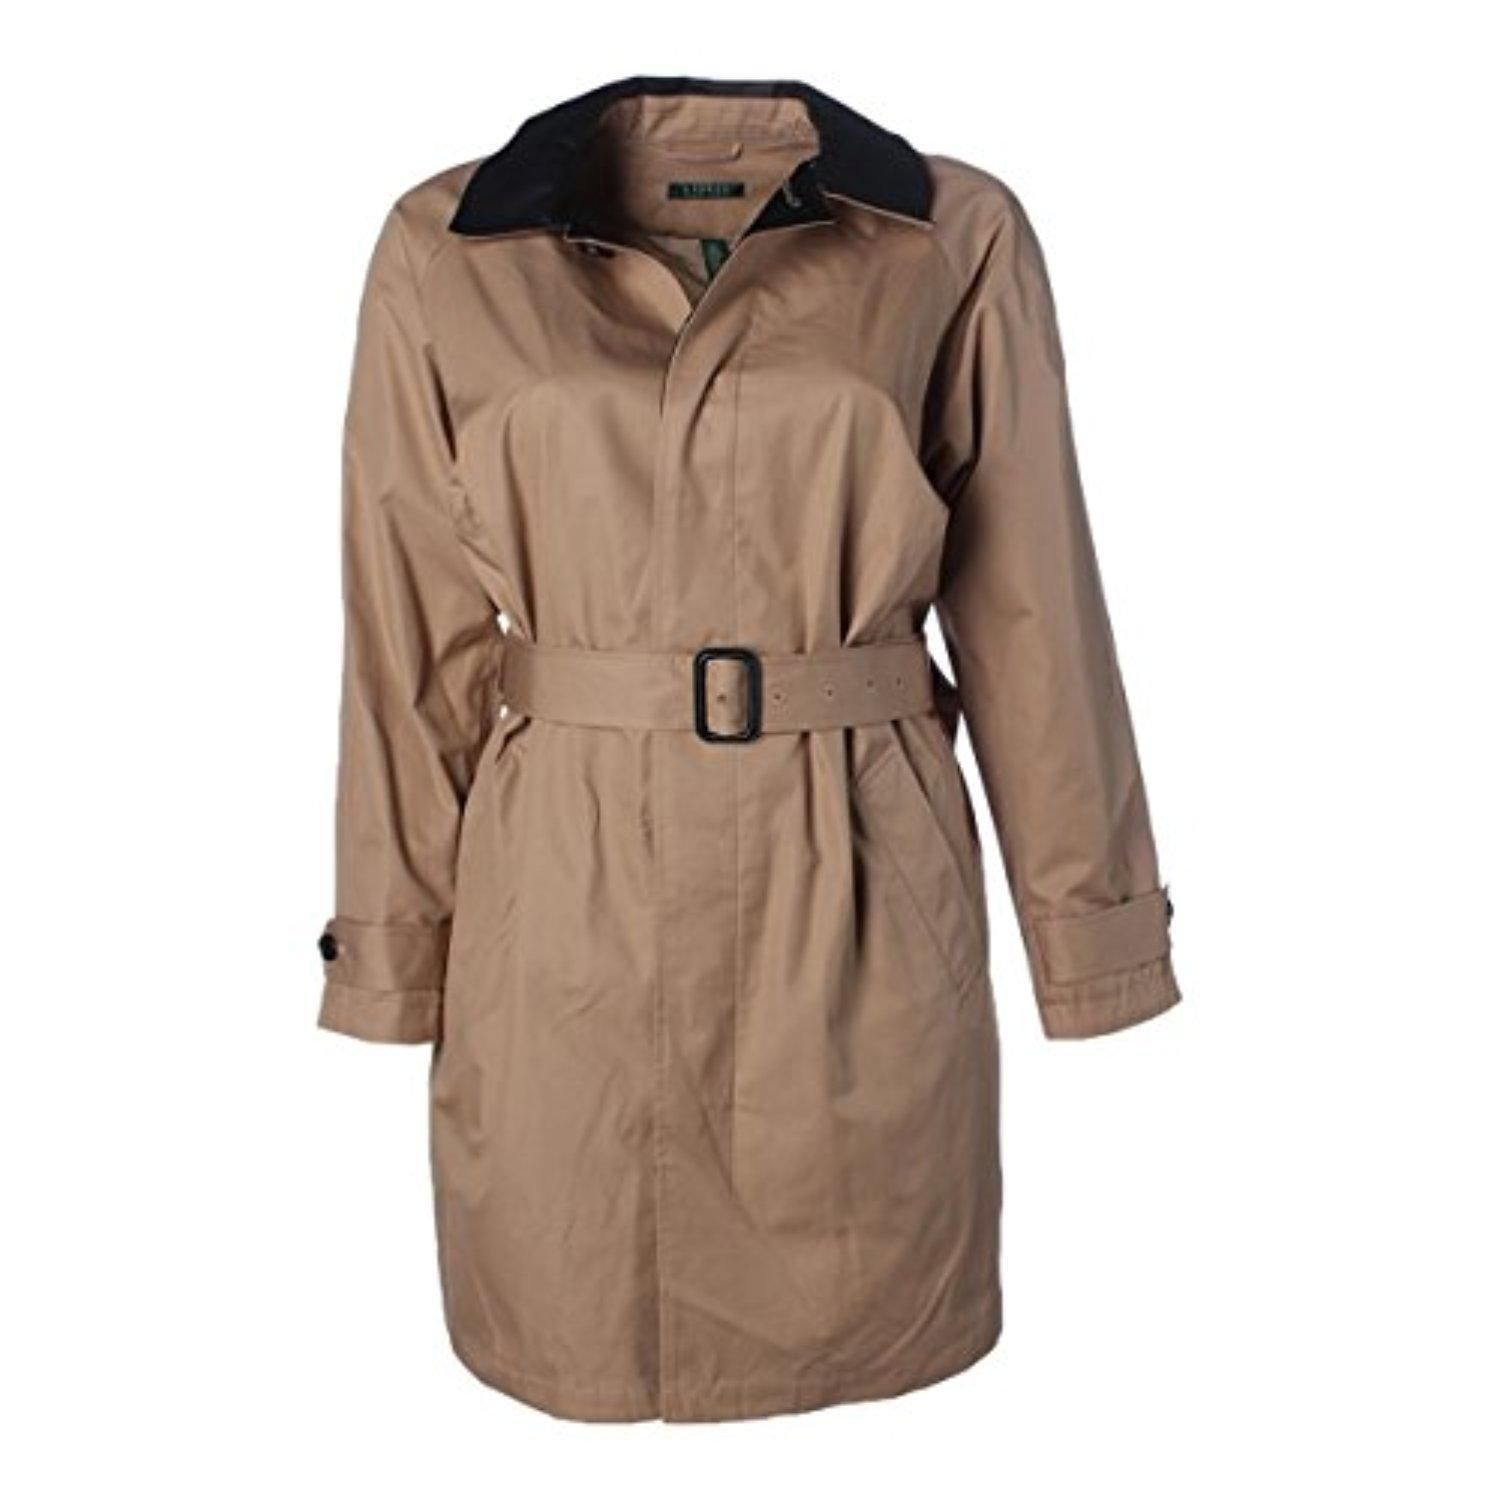 Lauren Ralph Lauren Womens Plus Faux Leather Long Sleeves Trench Coat Tan 1X - Brought to you by Avarsha.com